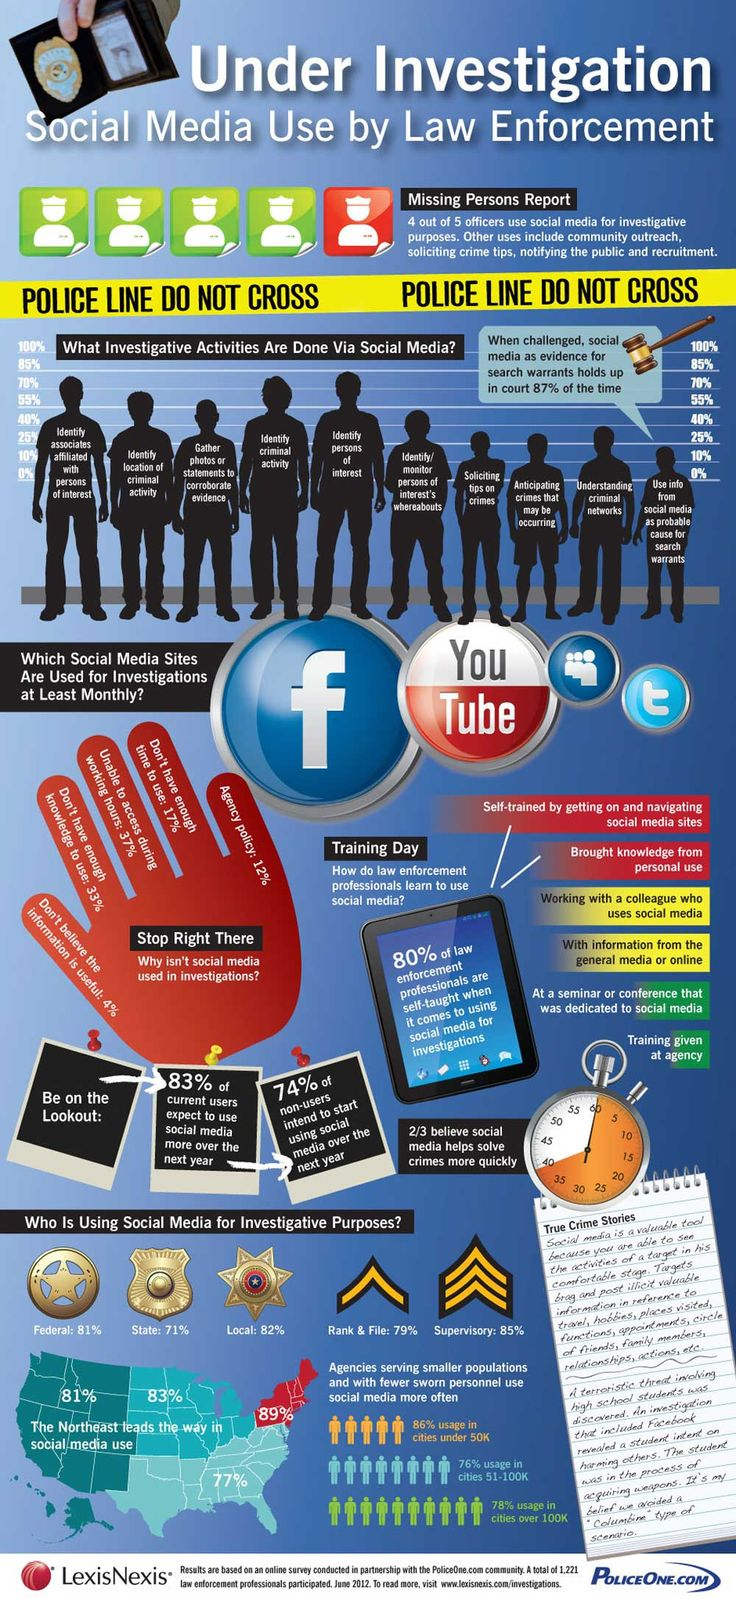 Social media used by law enforcement Daily Infographic | A New Infographic Every Day | Data Visualization, Information Design and Infographics | page 5